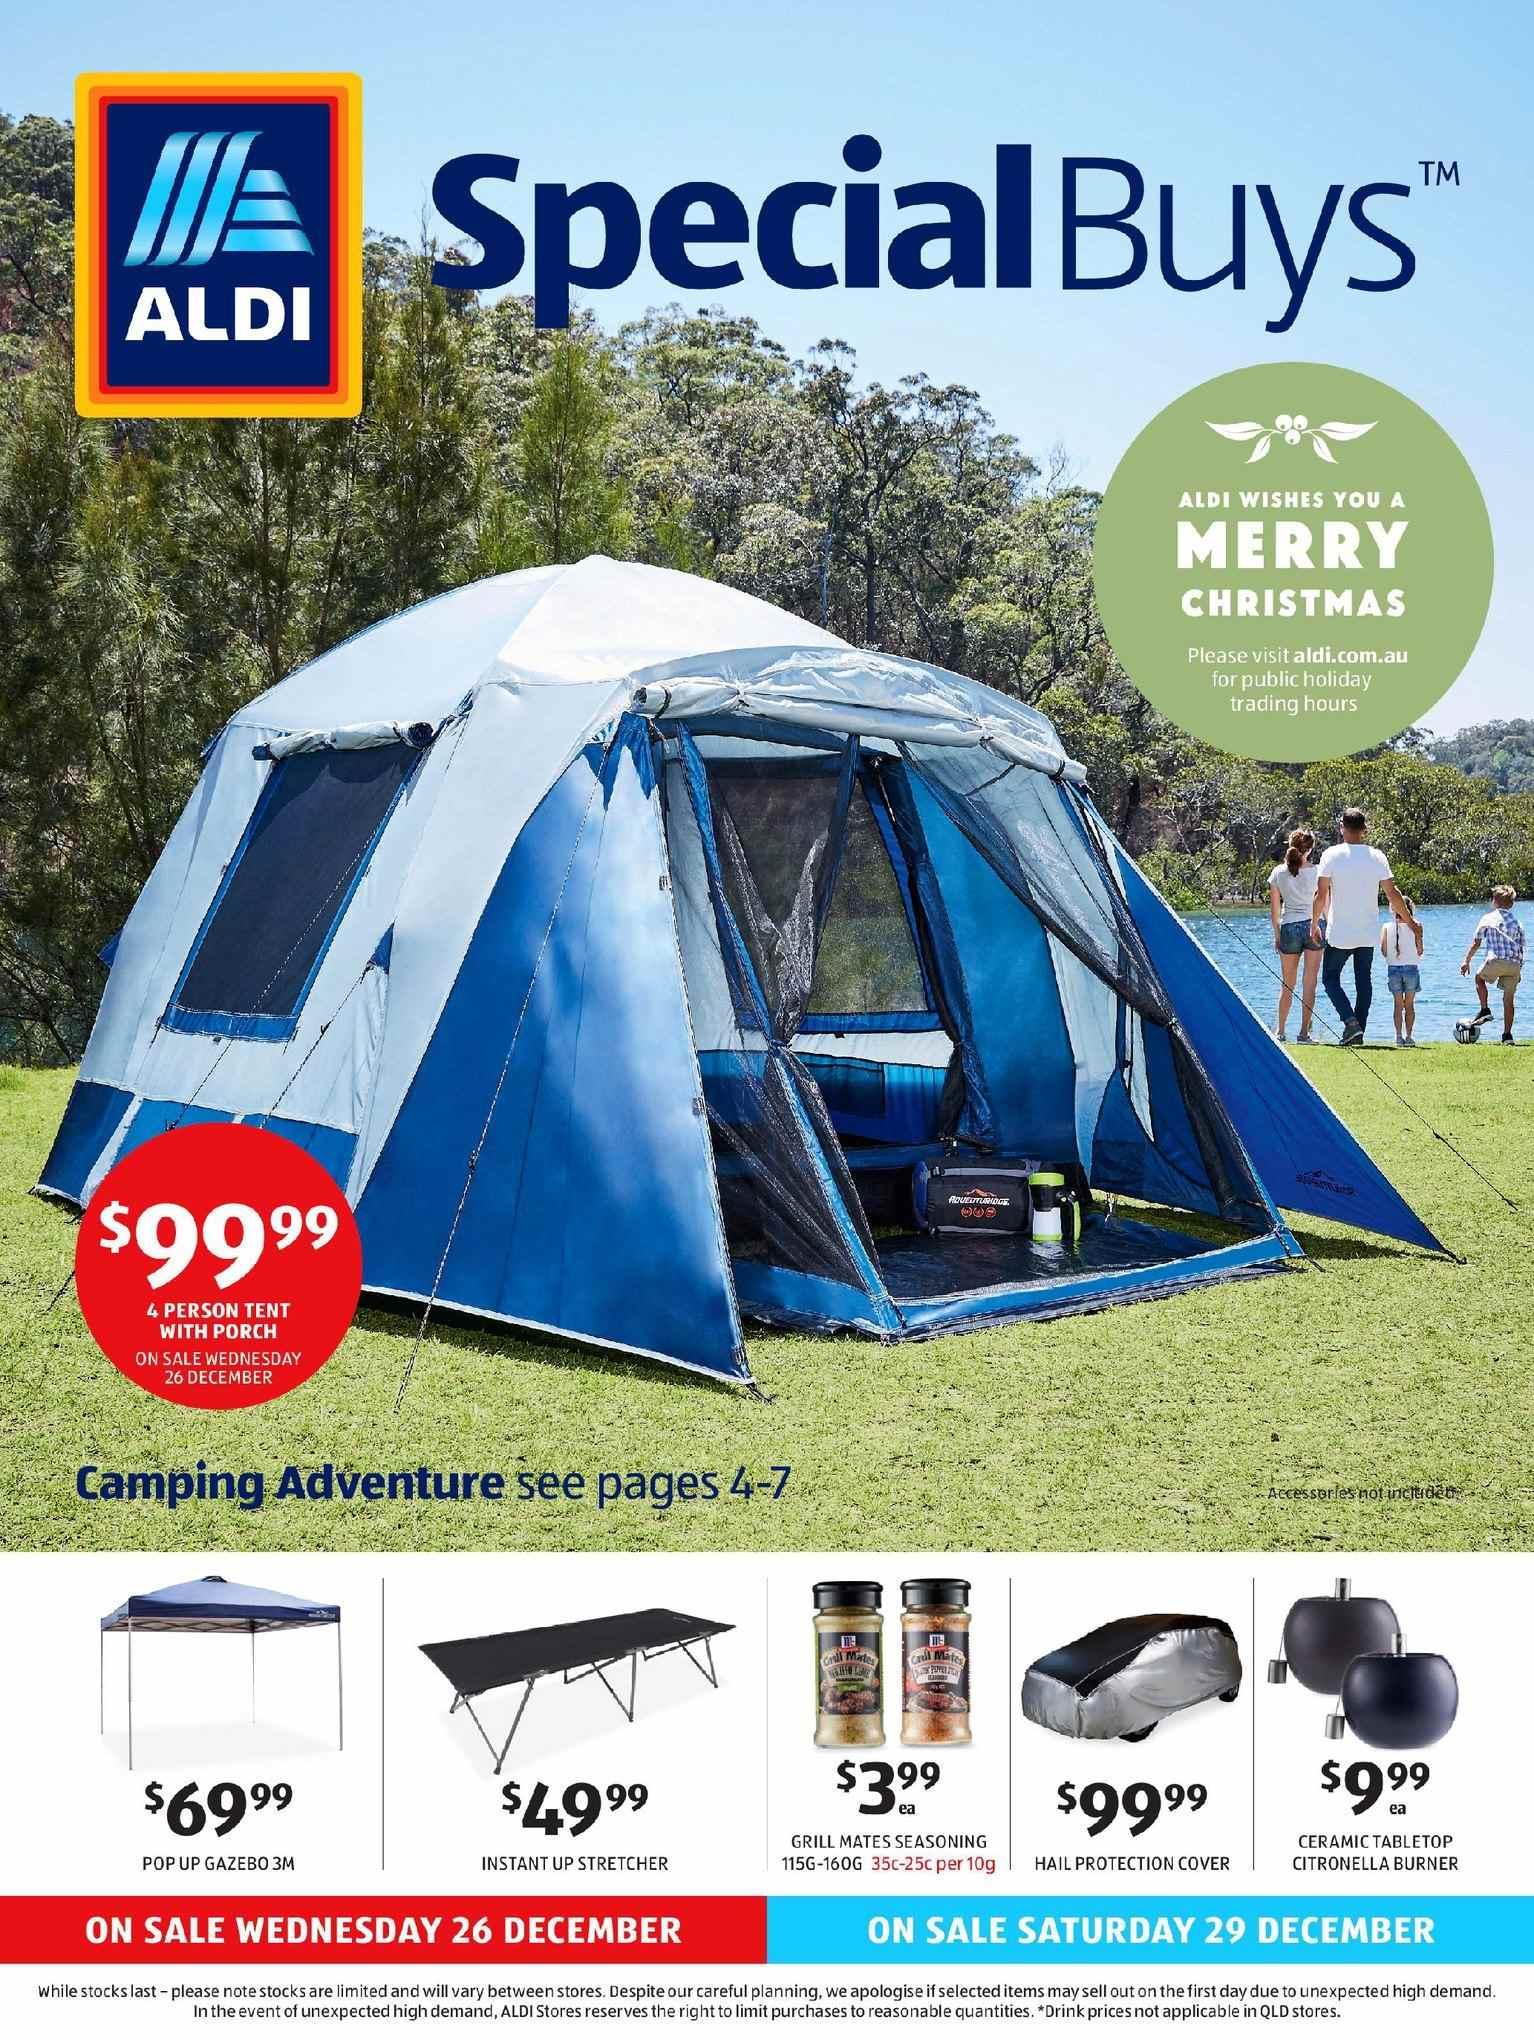 ALDI Catalogue - 26.12.2018 - 31.12.2018 - Sales products - cover, grill, tent, christmas. Page 1.